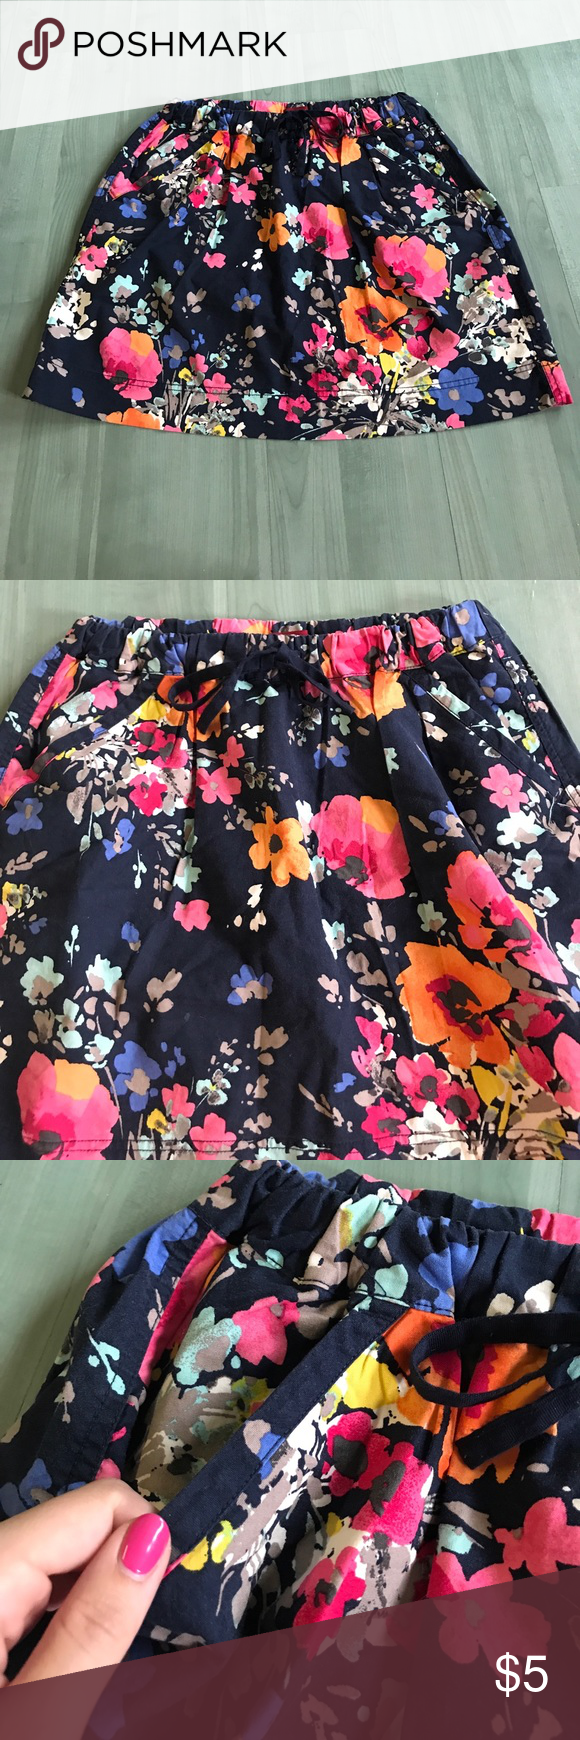 Merona skirt This is a size medium, Merona floral skirts has a dark navy background, with a pretty multi- colored floral pattern. Has 2 pockets, and a tight waist for tighter or looser wear. Re posh, never worn by myself. Smoke free home. Merona Skirts Midi